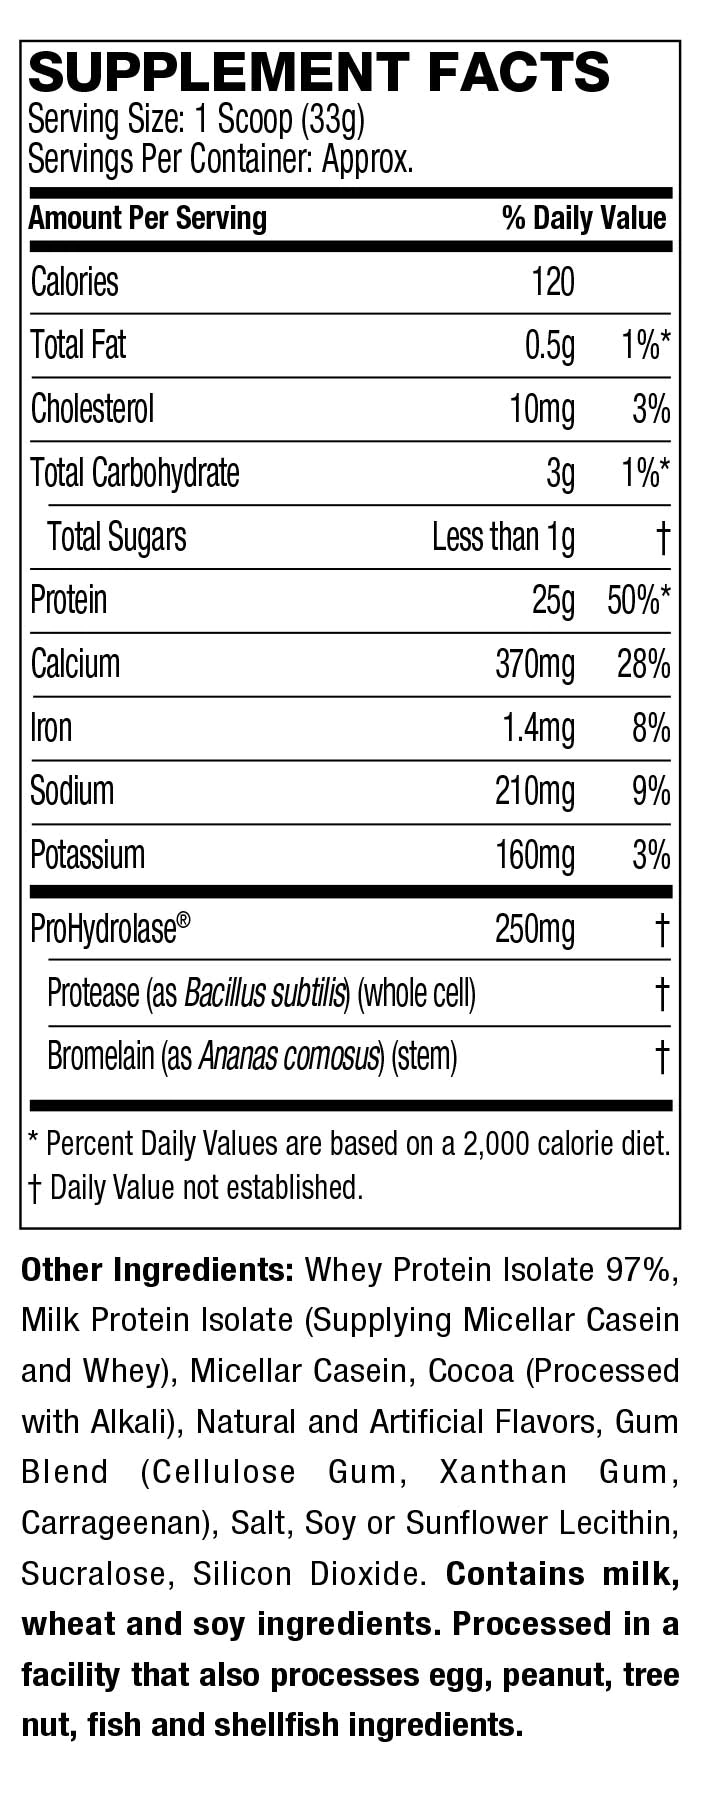 suppfacts-peak-protein-choc.png